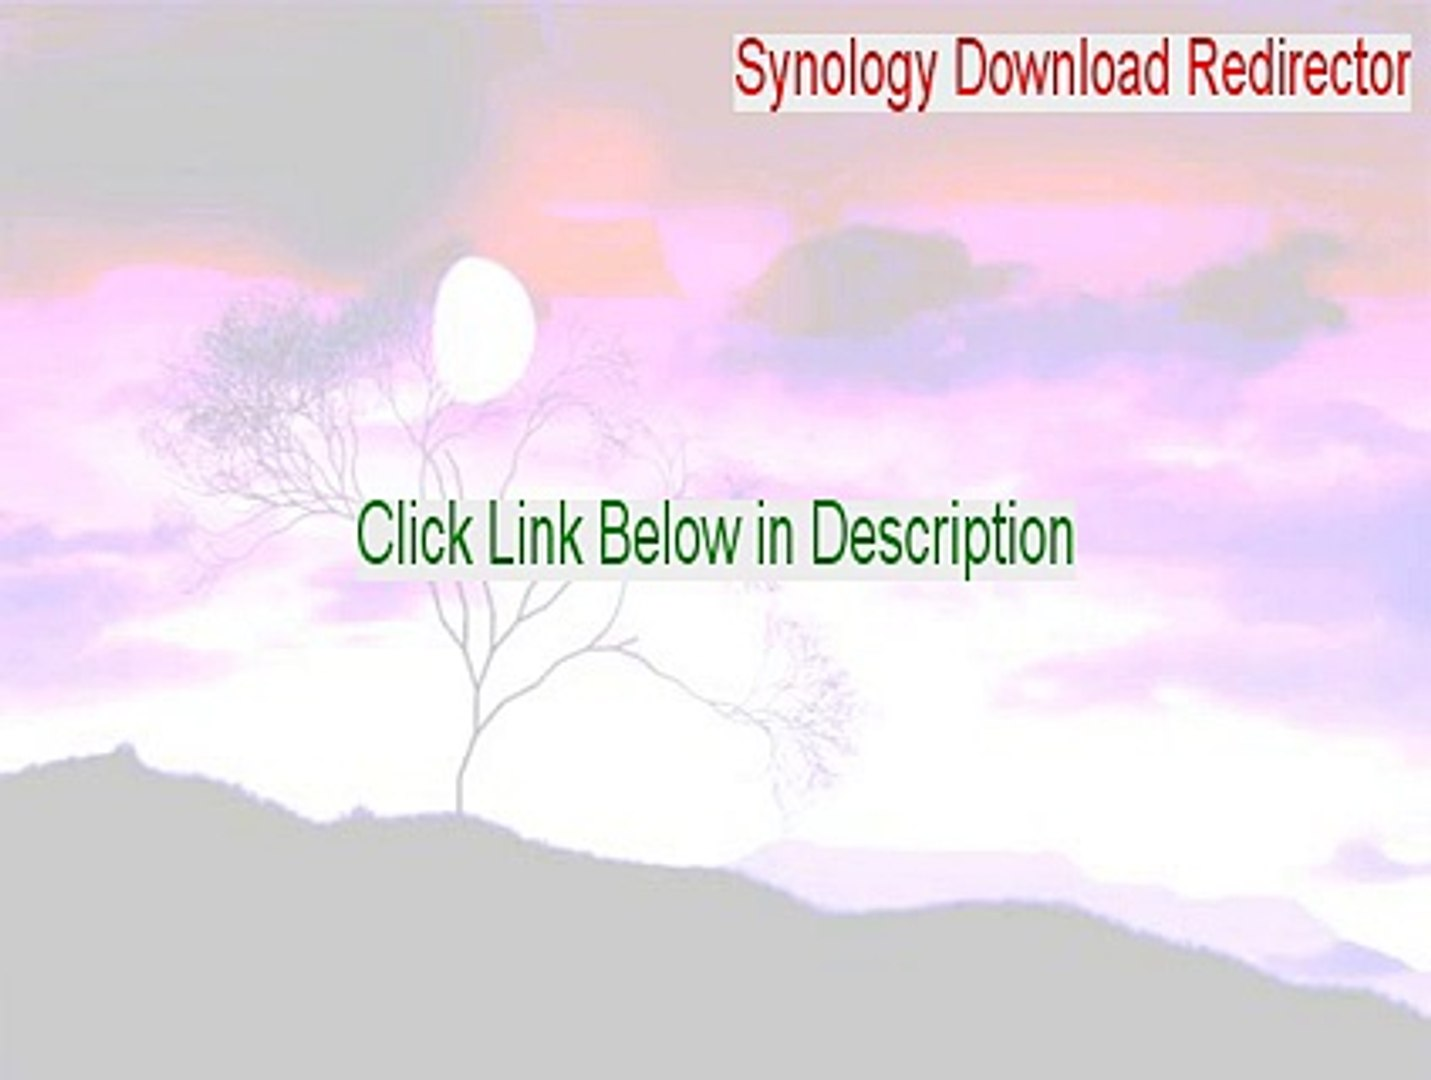 Synology Download Redirector Crack (Free Download)